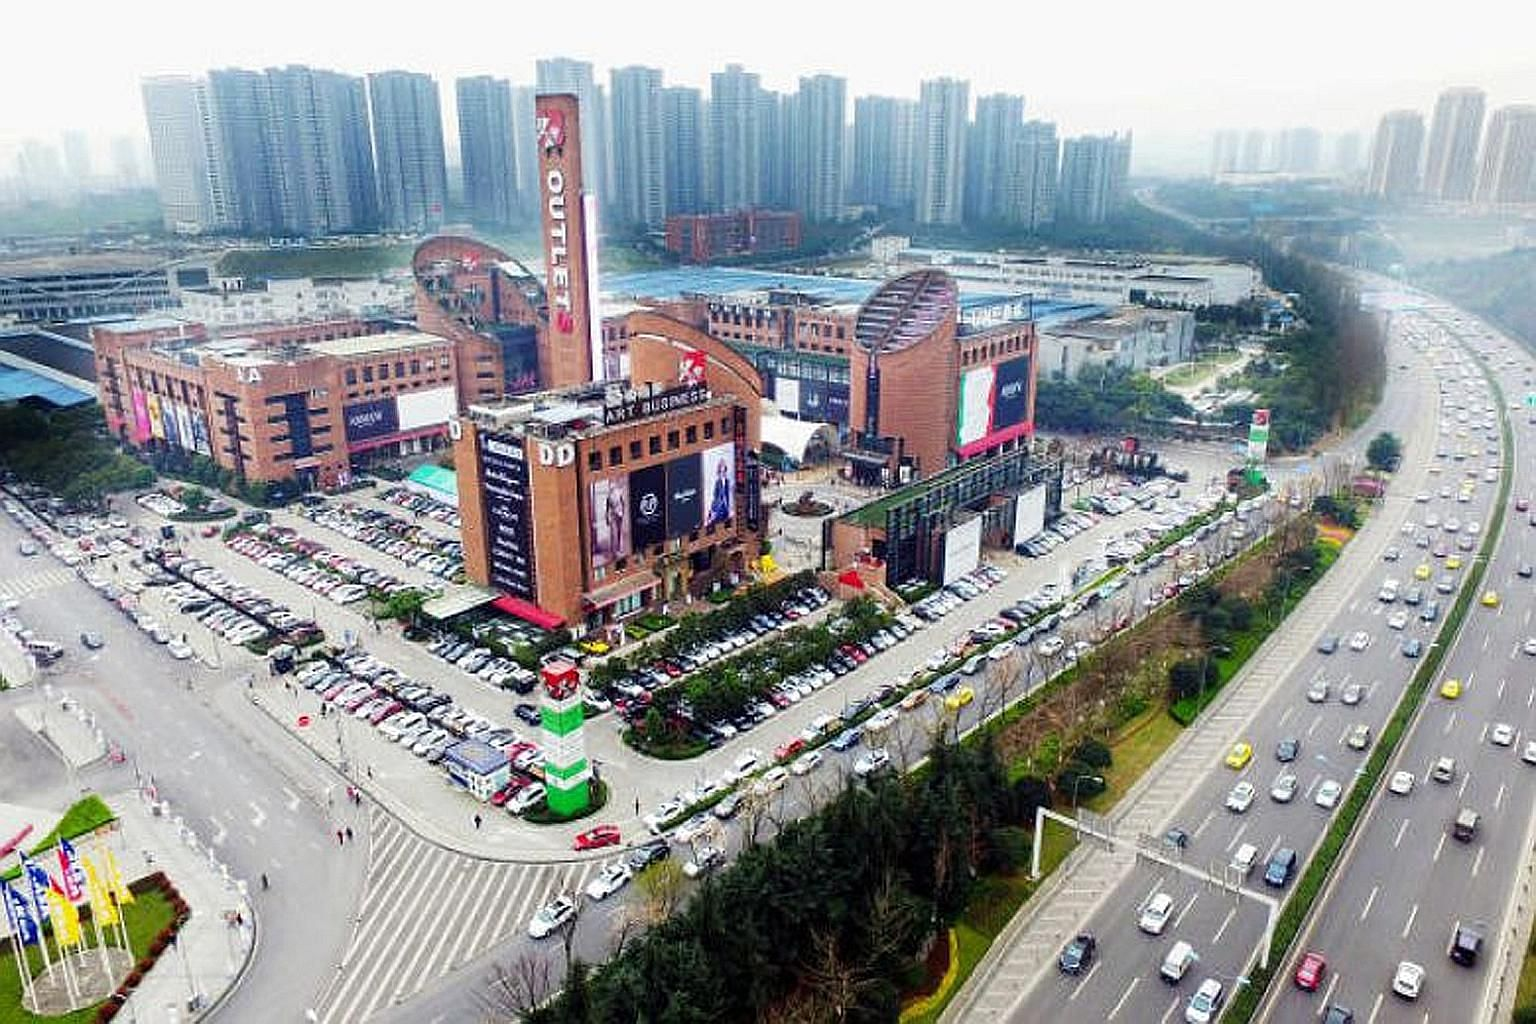 An outlet mall in Chongqing, China, that is part of Sasseur Reit's portfolio. Tenants of the Reit's properties in China share about 15 per cent of their revenue with its Chinese parent, which keeps some to run the properties, and shares a fixed sum a